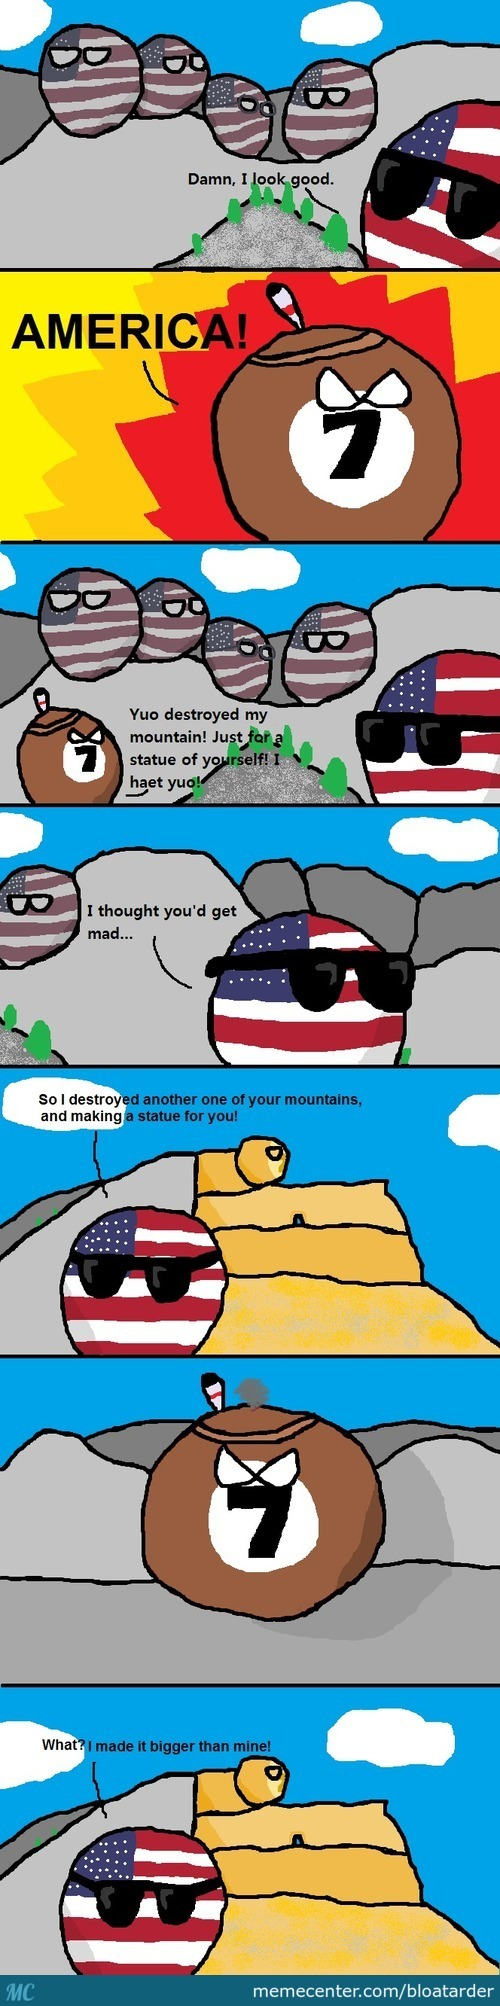 Americas Way To Fix The Problem